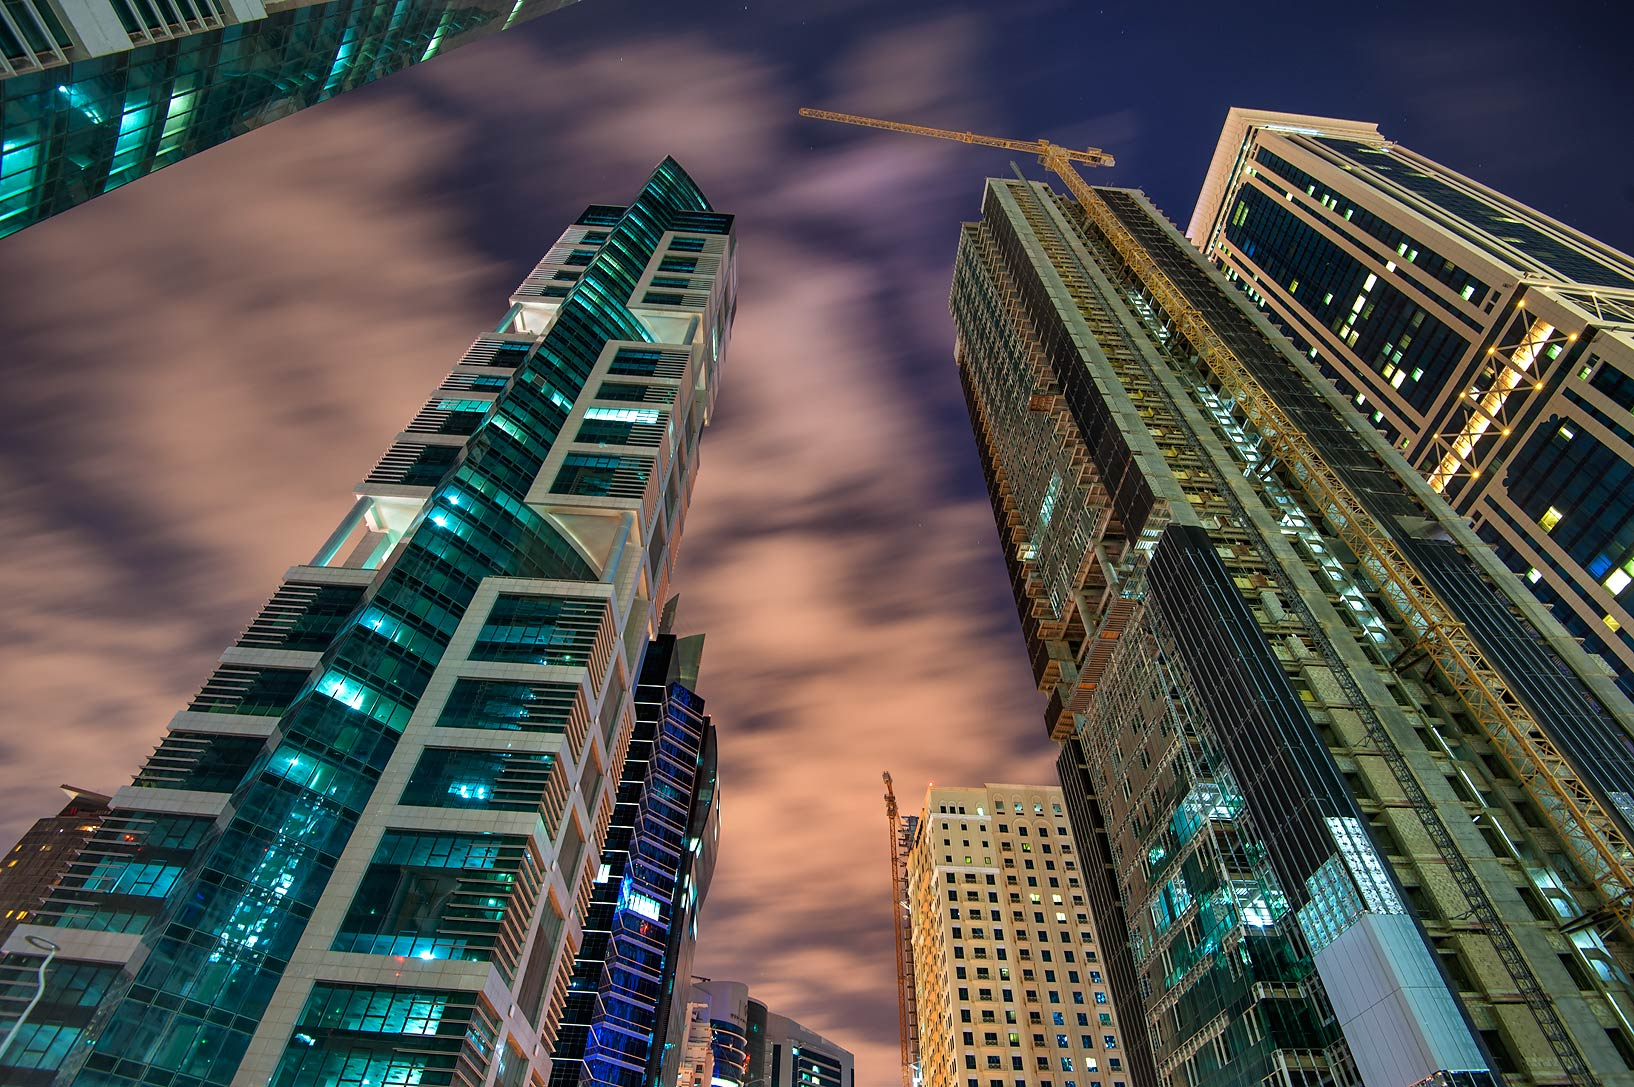 Towers near Kempinski Hotel on Conference Center...City Center in West Bay. Doha, Qatar